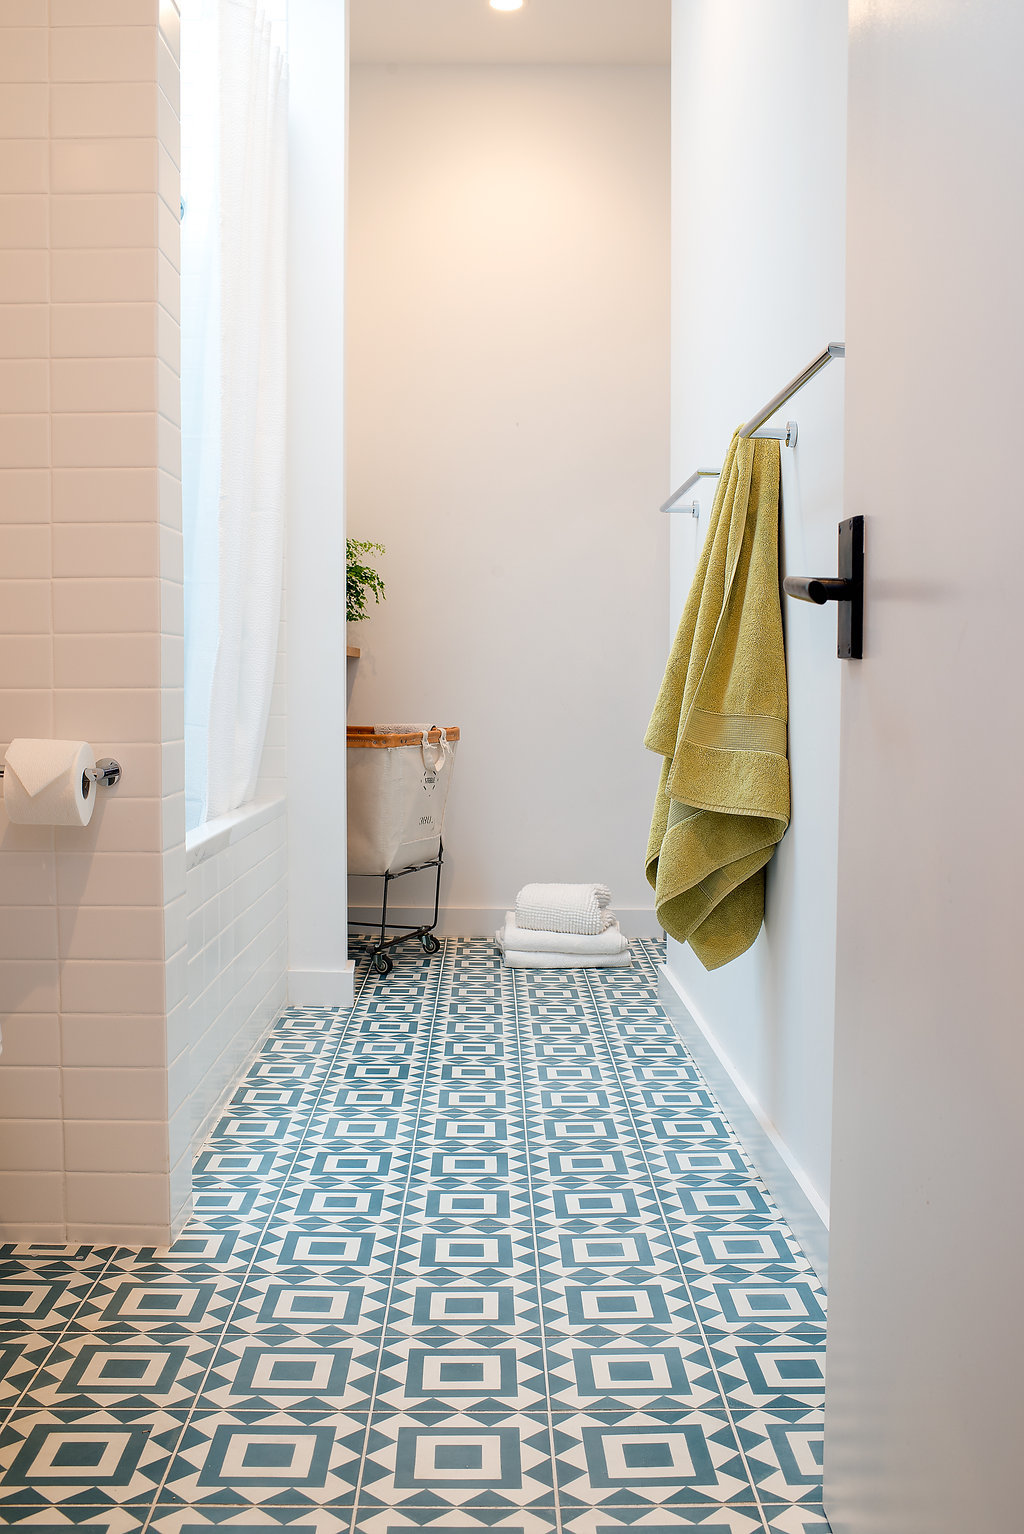 bathroom with white wall tile and blue and white patterned floor tile and chrome hardware.jpg